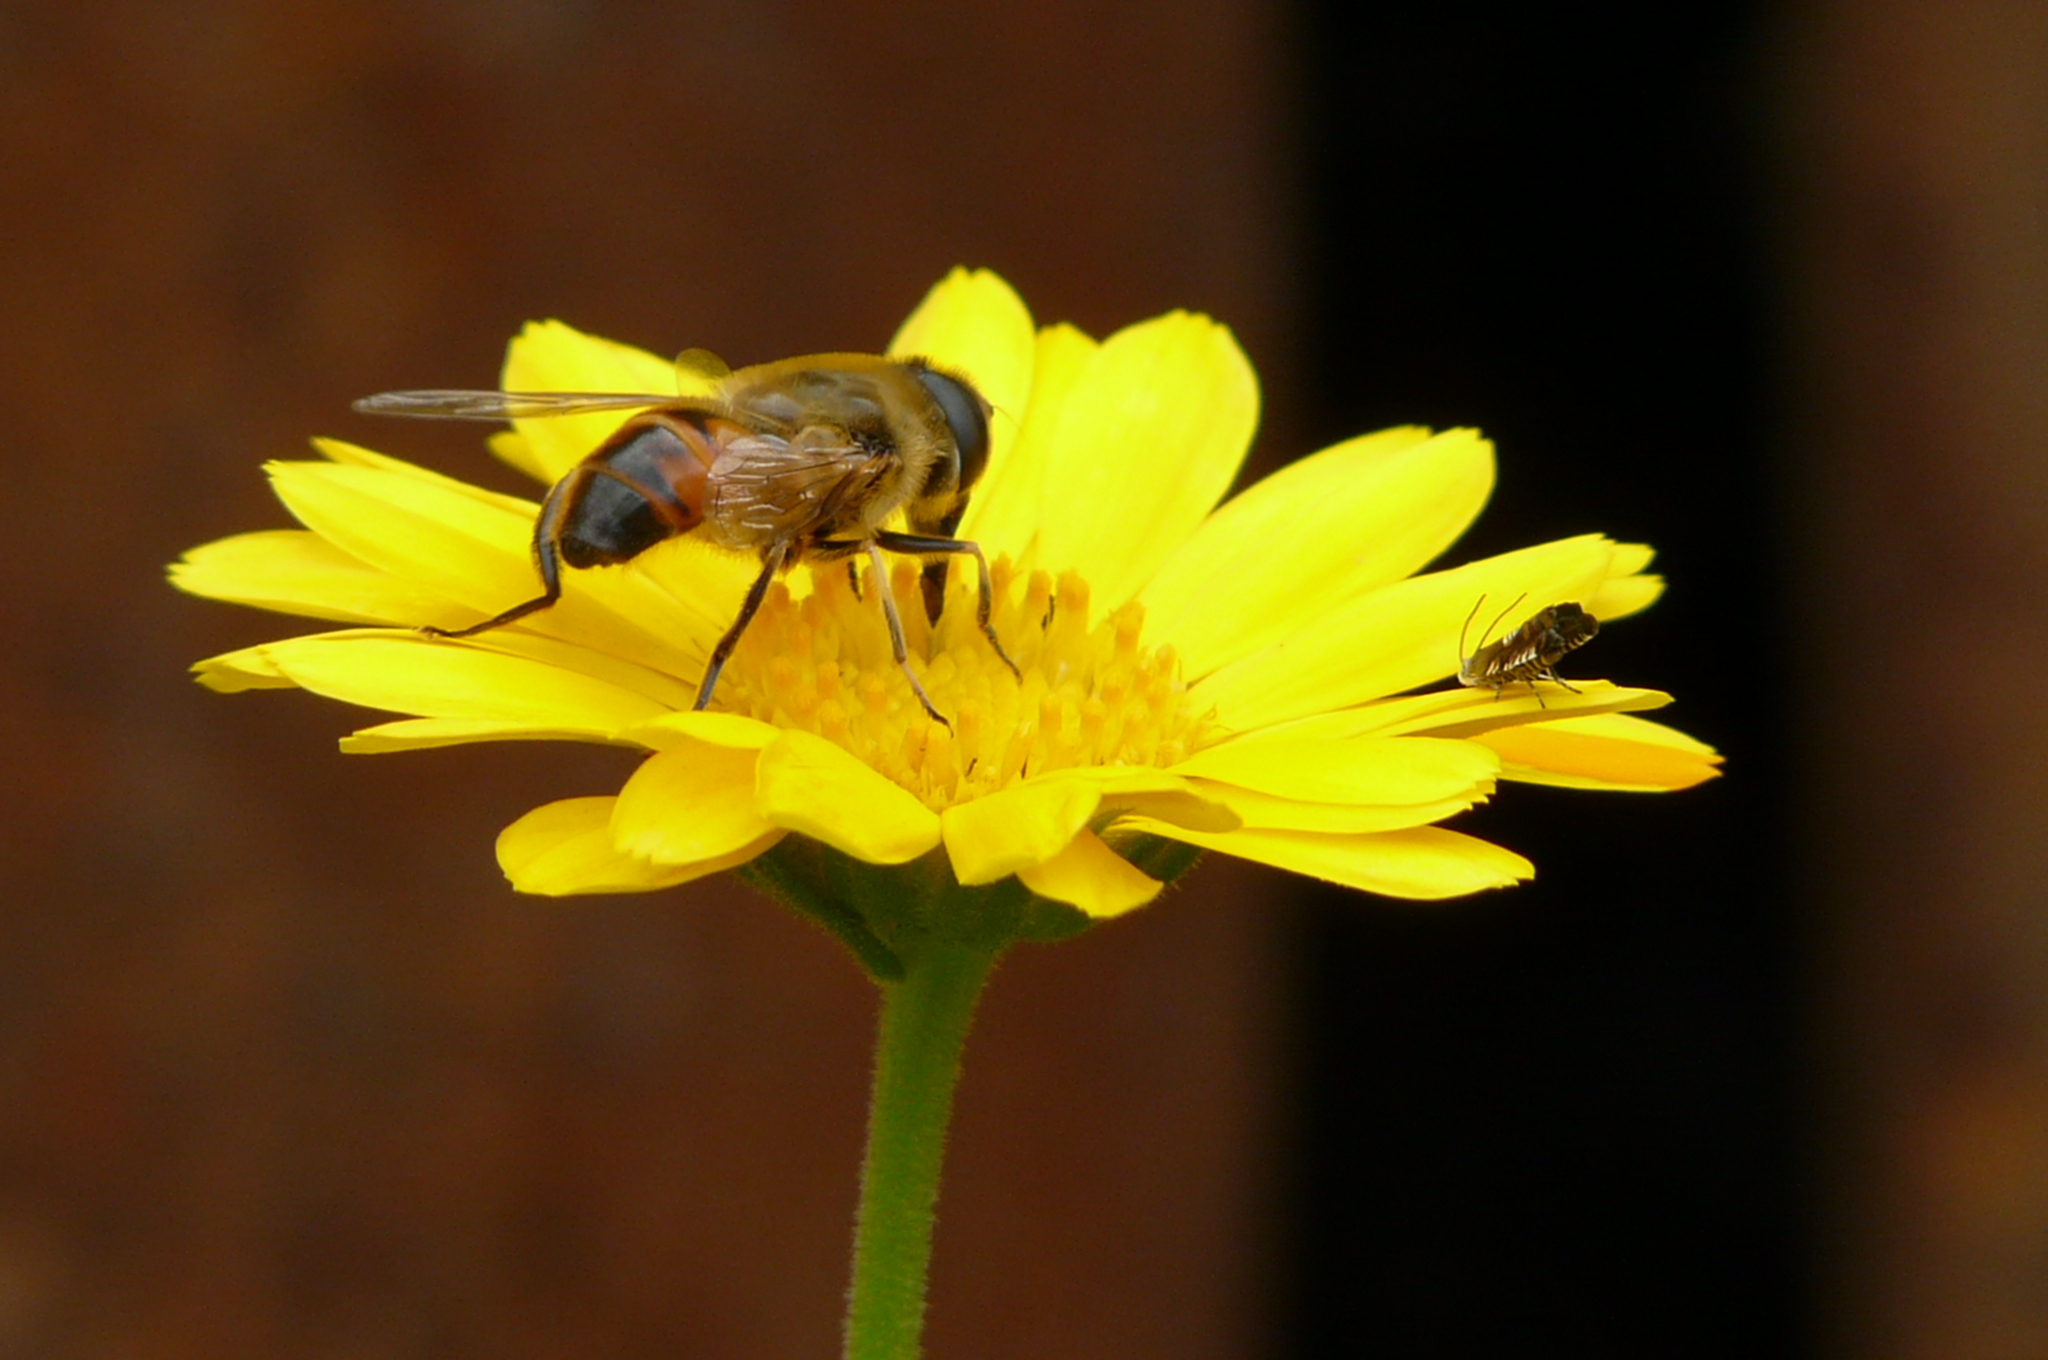 20451 Screensavers and Wallpapers Bees for phone. Download Plants, Flowers, Insects, Bees pictures for free